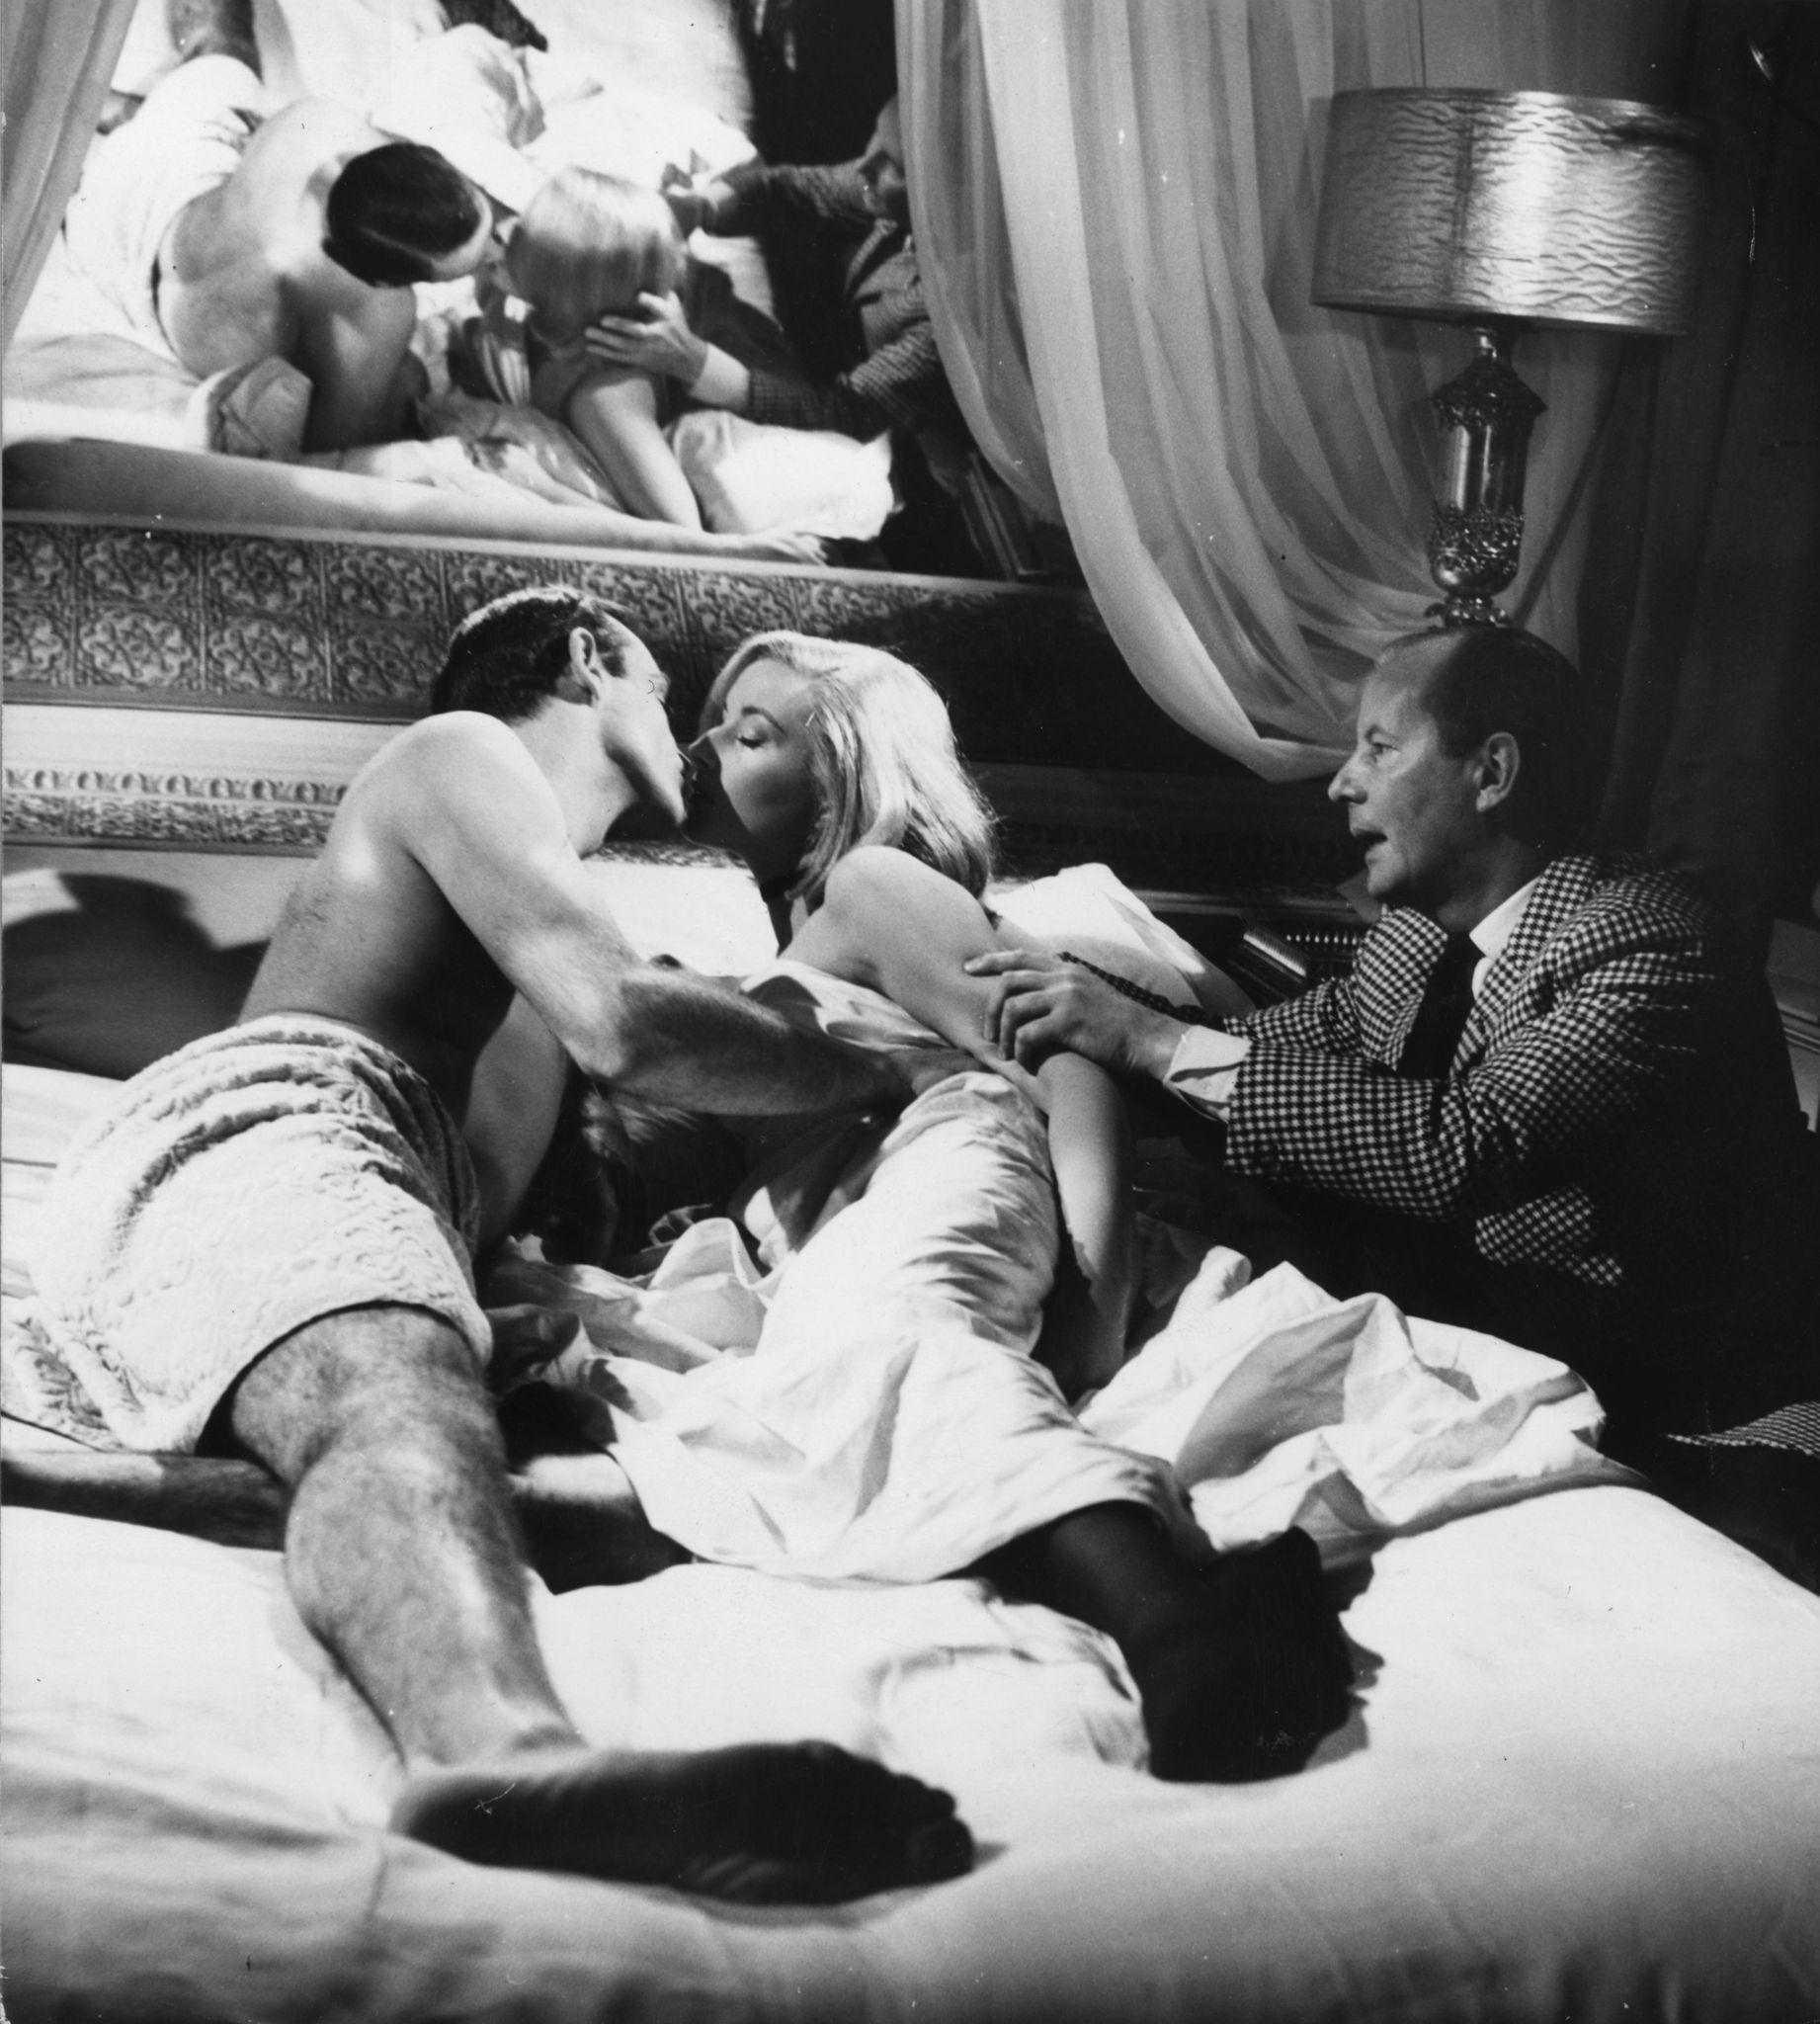 Terence Young directing Connery and Bianchi.